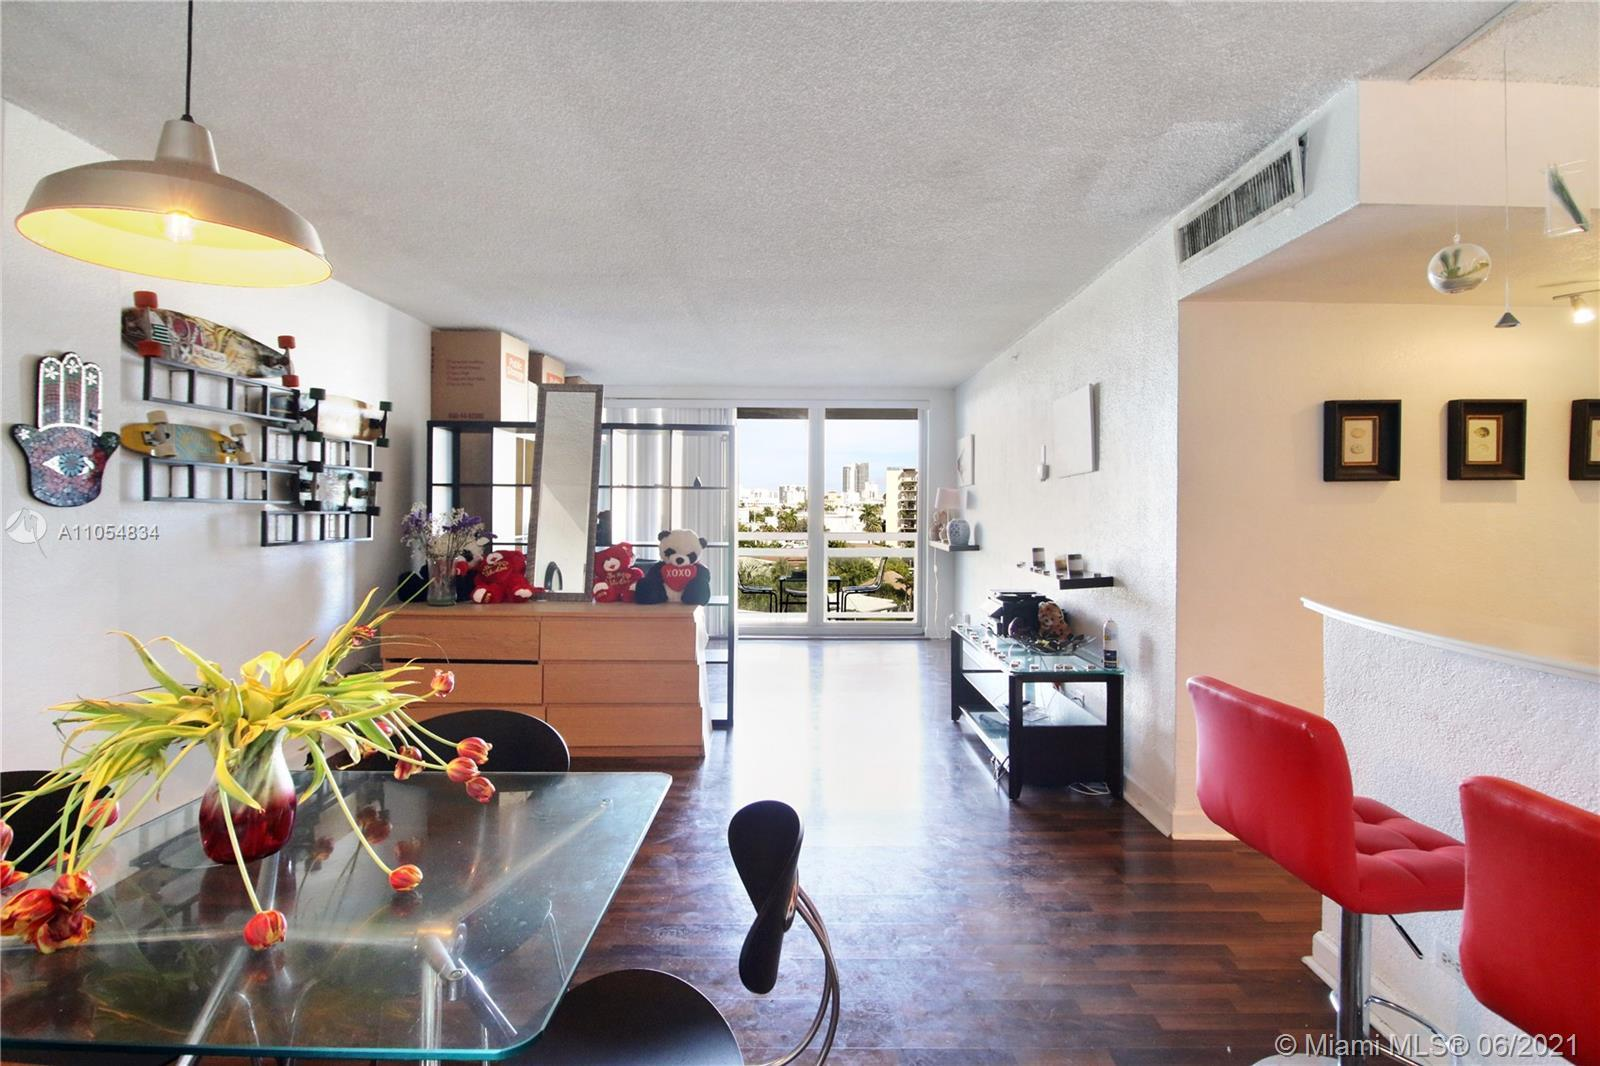 NOT APPROVED SHORT SALE The best complex in south beach, both for residents and tourists. 5 STAR BUI